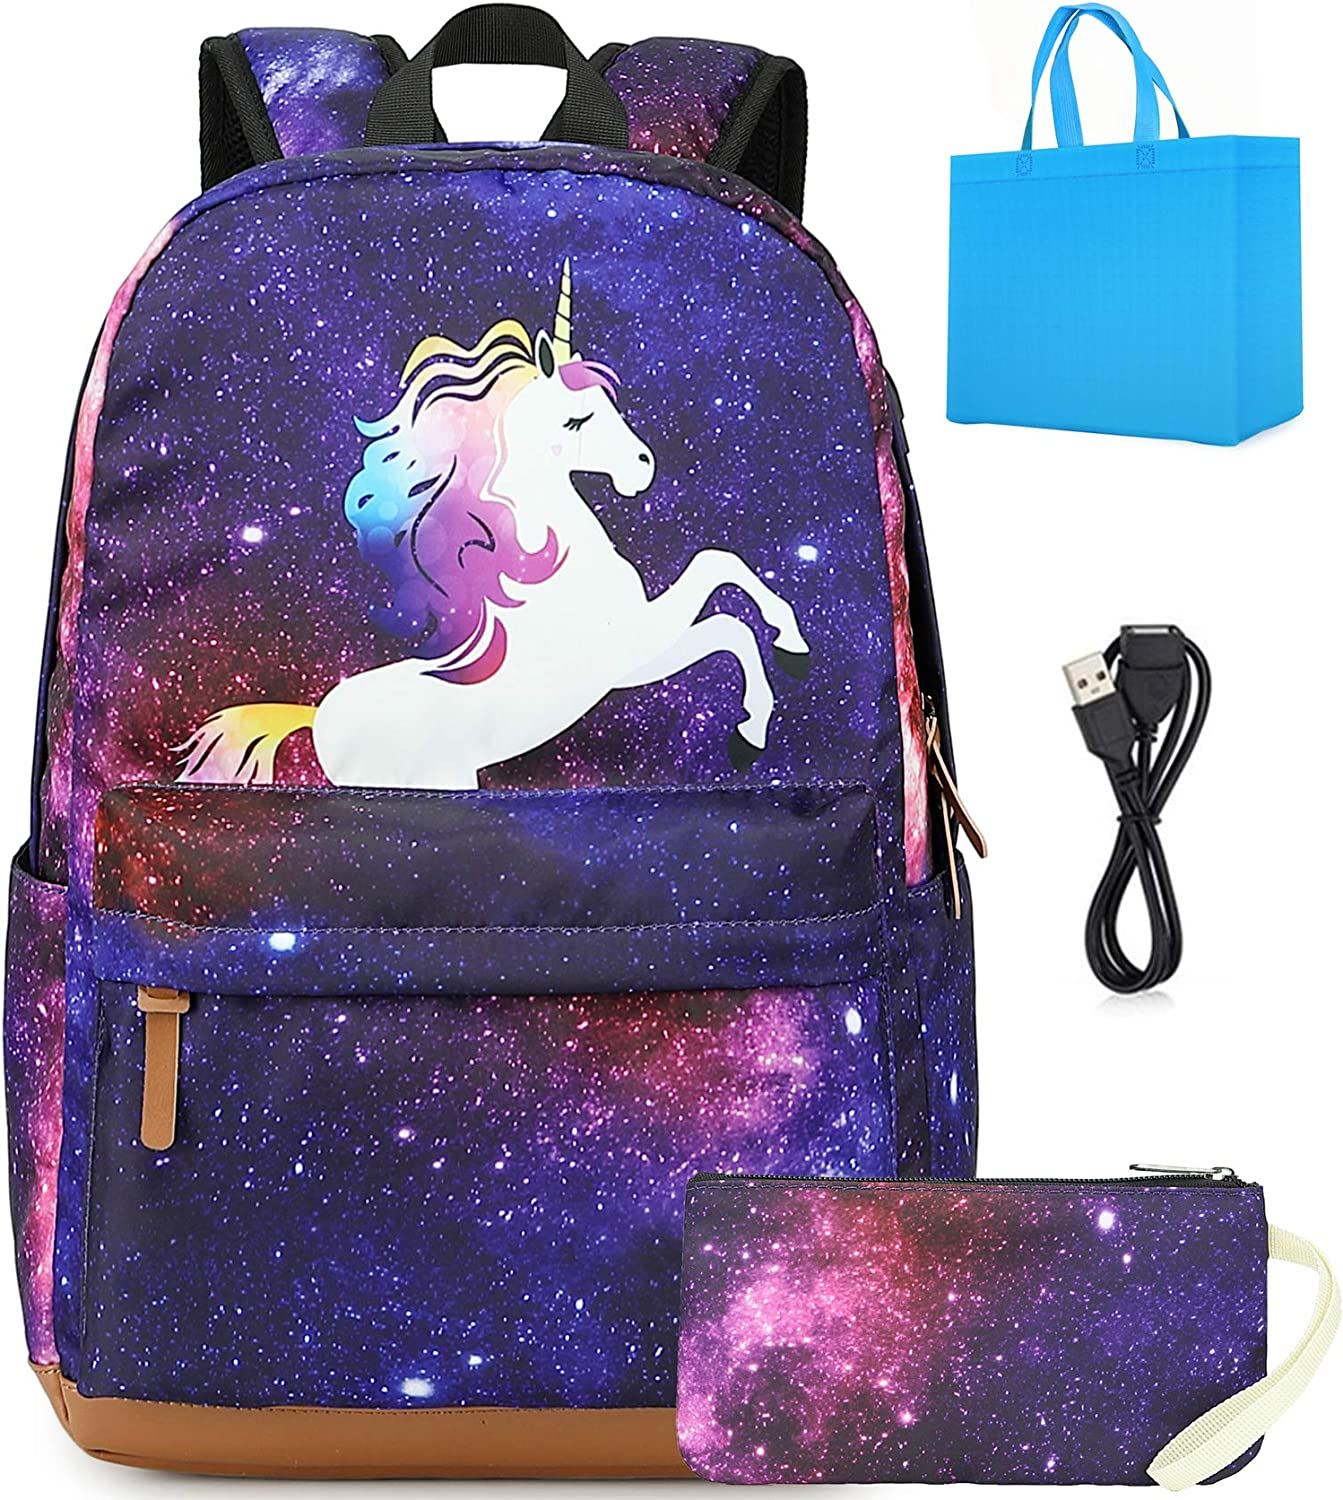 School Backpack for Girls Purple Lightweight Laptop Backpack fits 15.6 inch Kids School Bookbag Galaxy Casual Daypack with USB Port 2 Packs